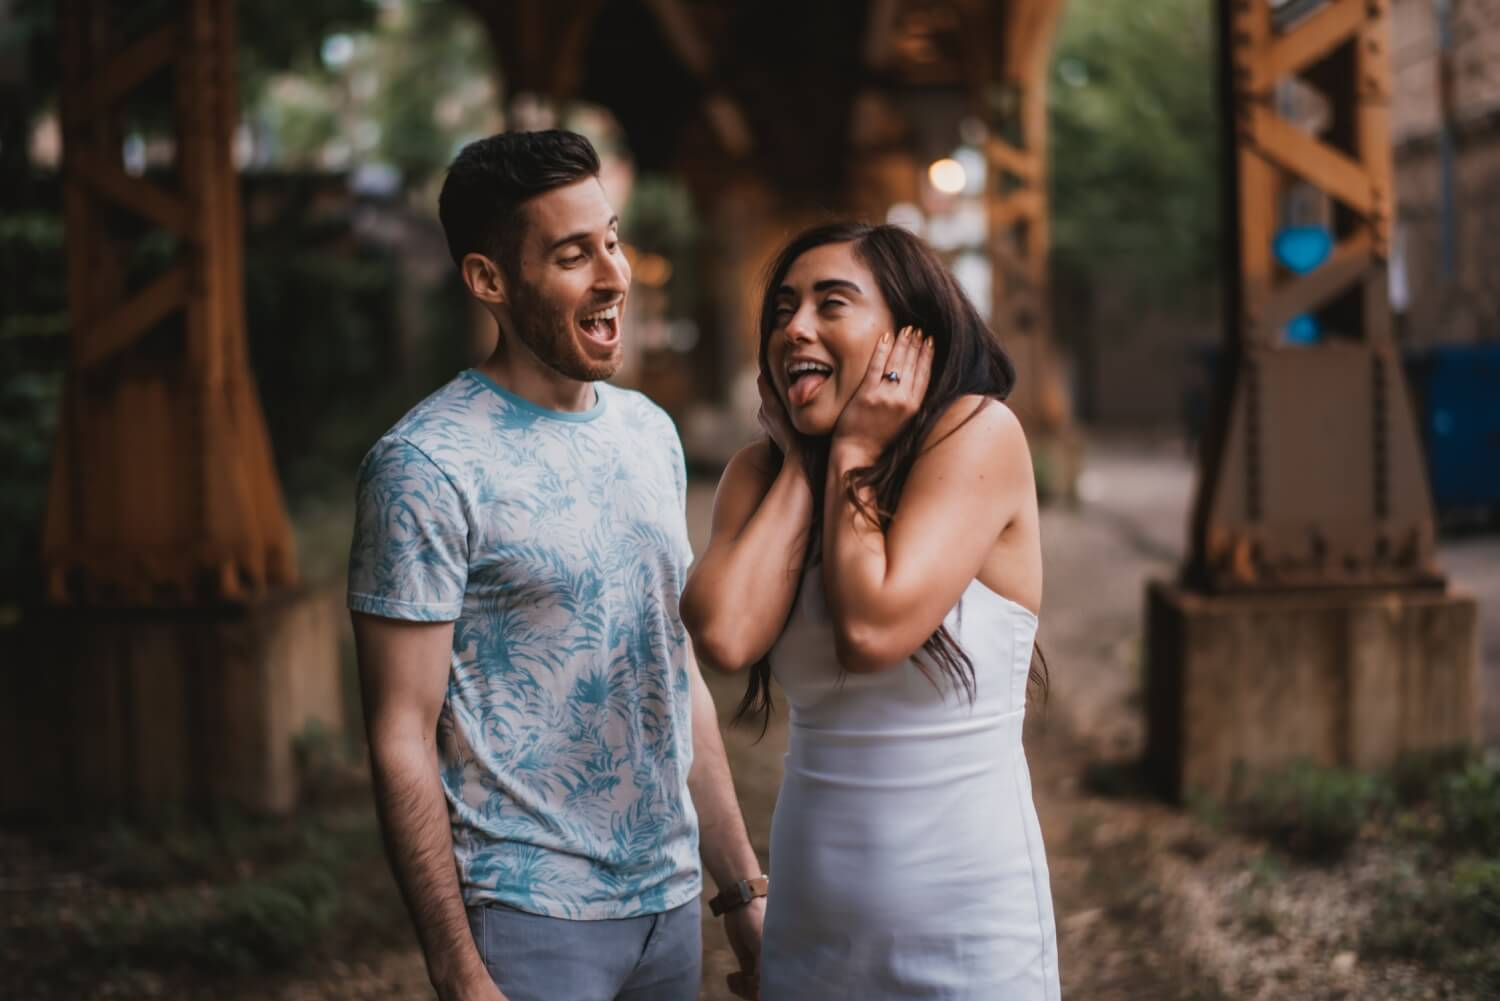 Wicker Park Engagement Photographer - The Adamkovi, funny loud train photo